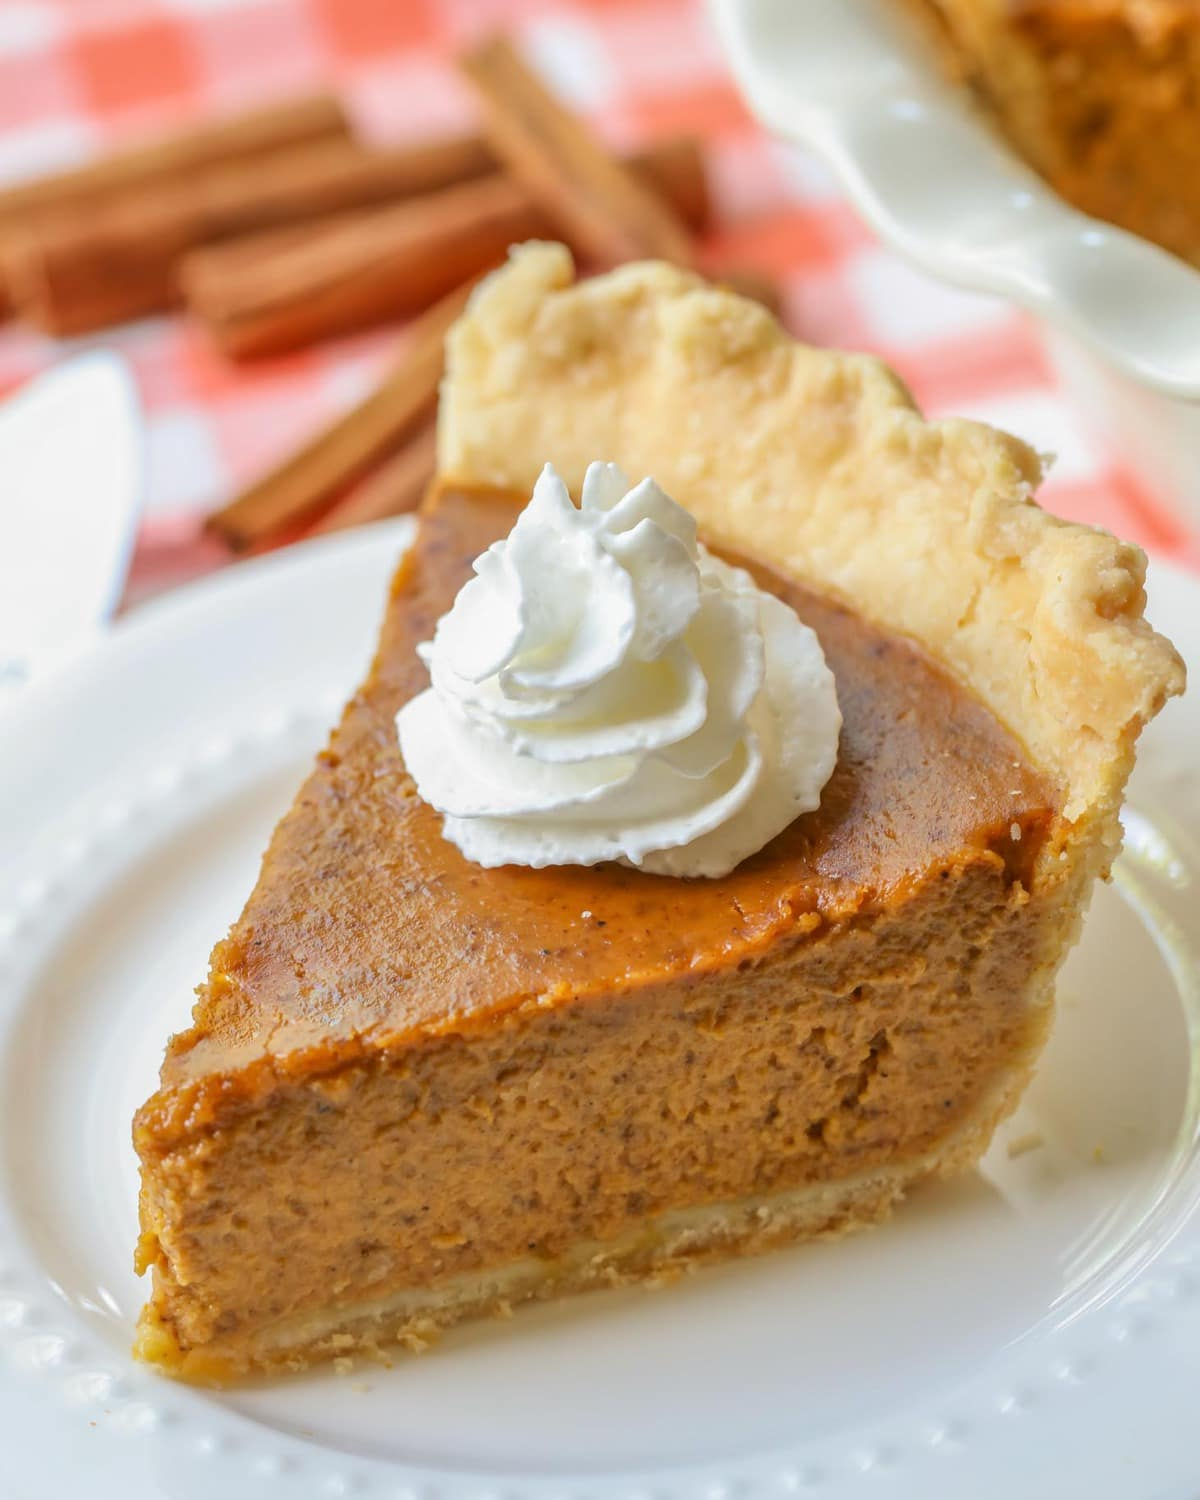 Slice of Pumpkin Pie Recipe on a plate